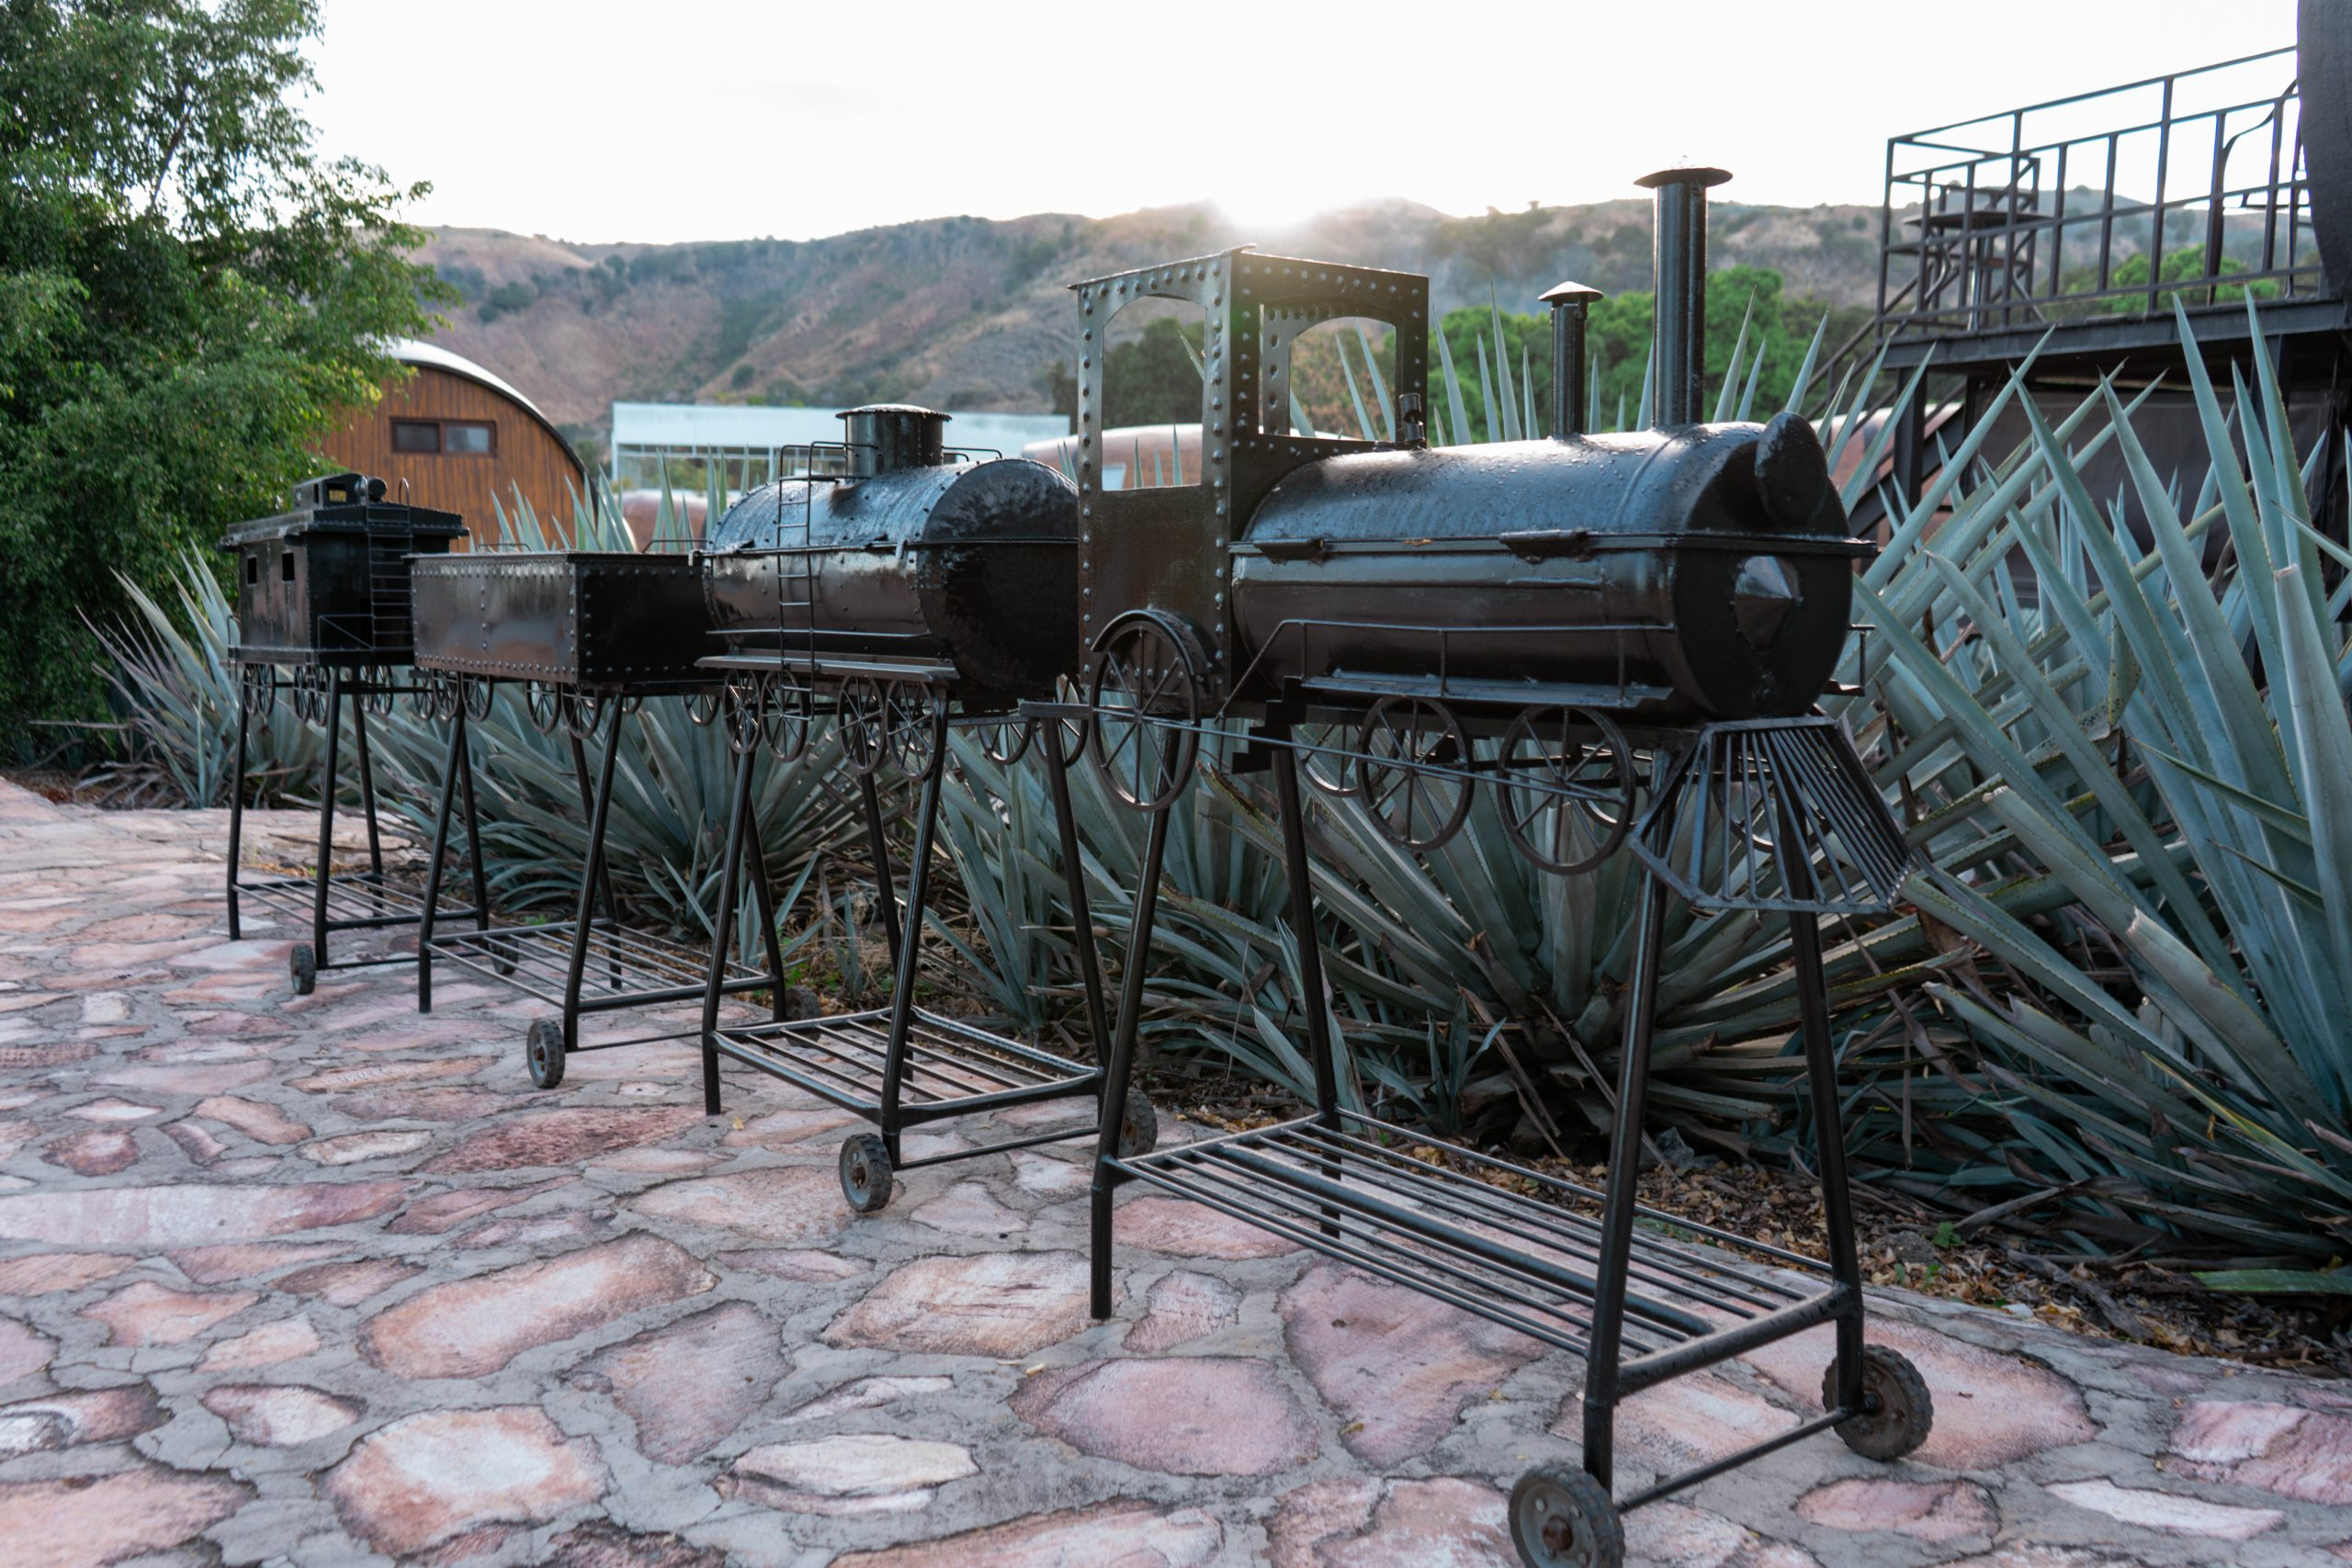 train barbeque barbecue grill blue agave mexico